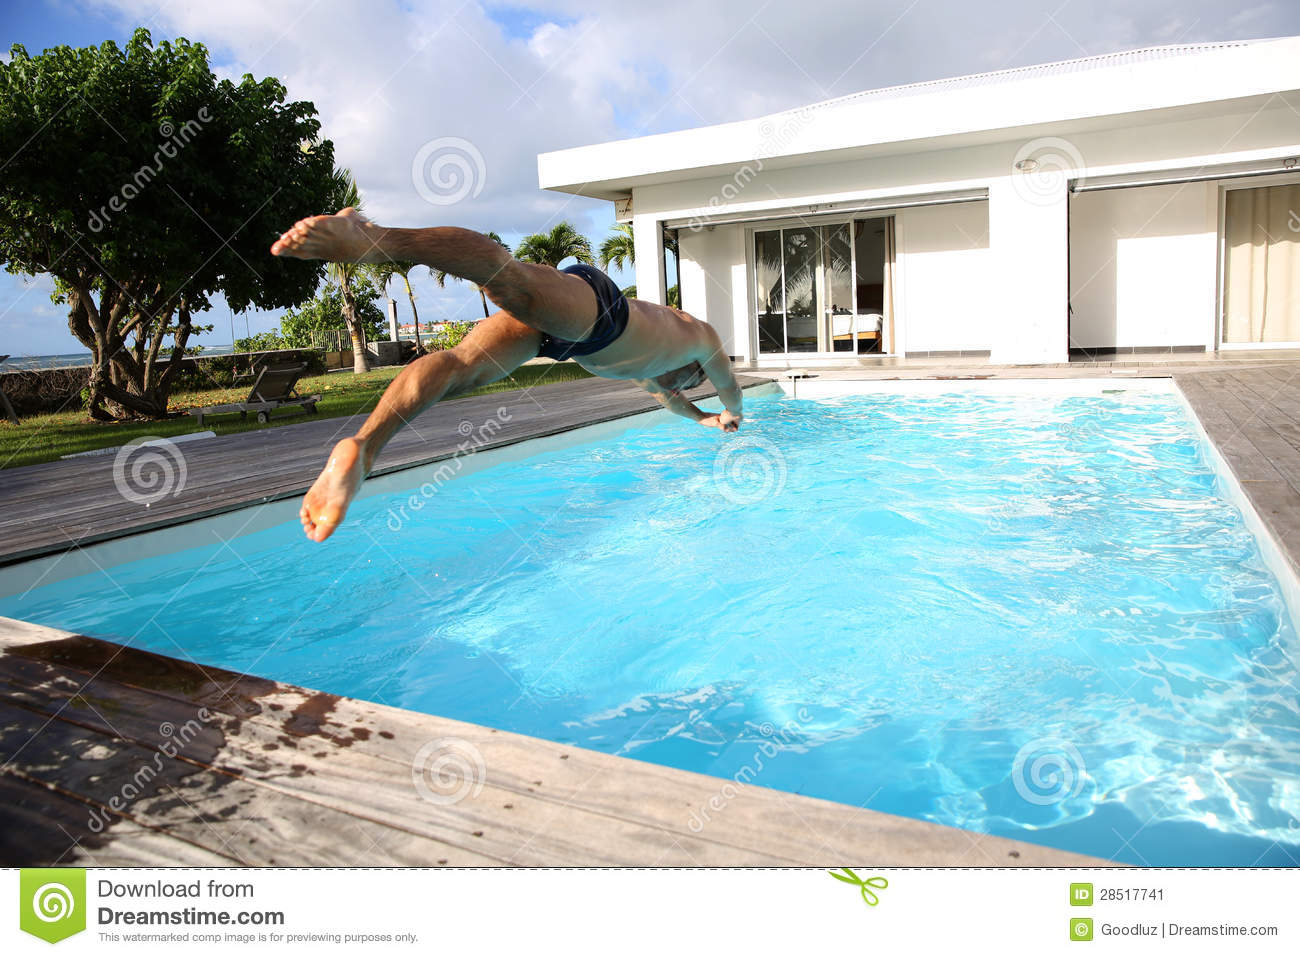 Pool Im Garten Integrieren Man Diving In Swimming Pool Stock Image Image 28517741